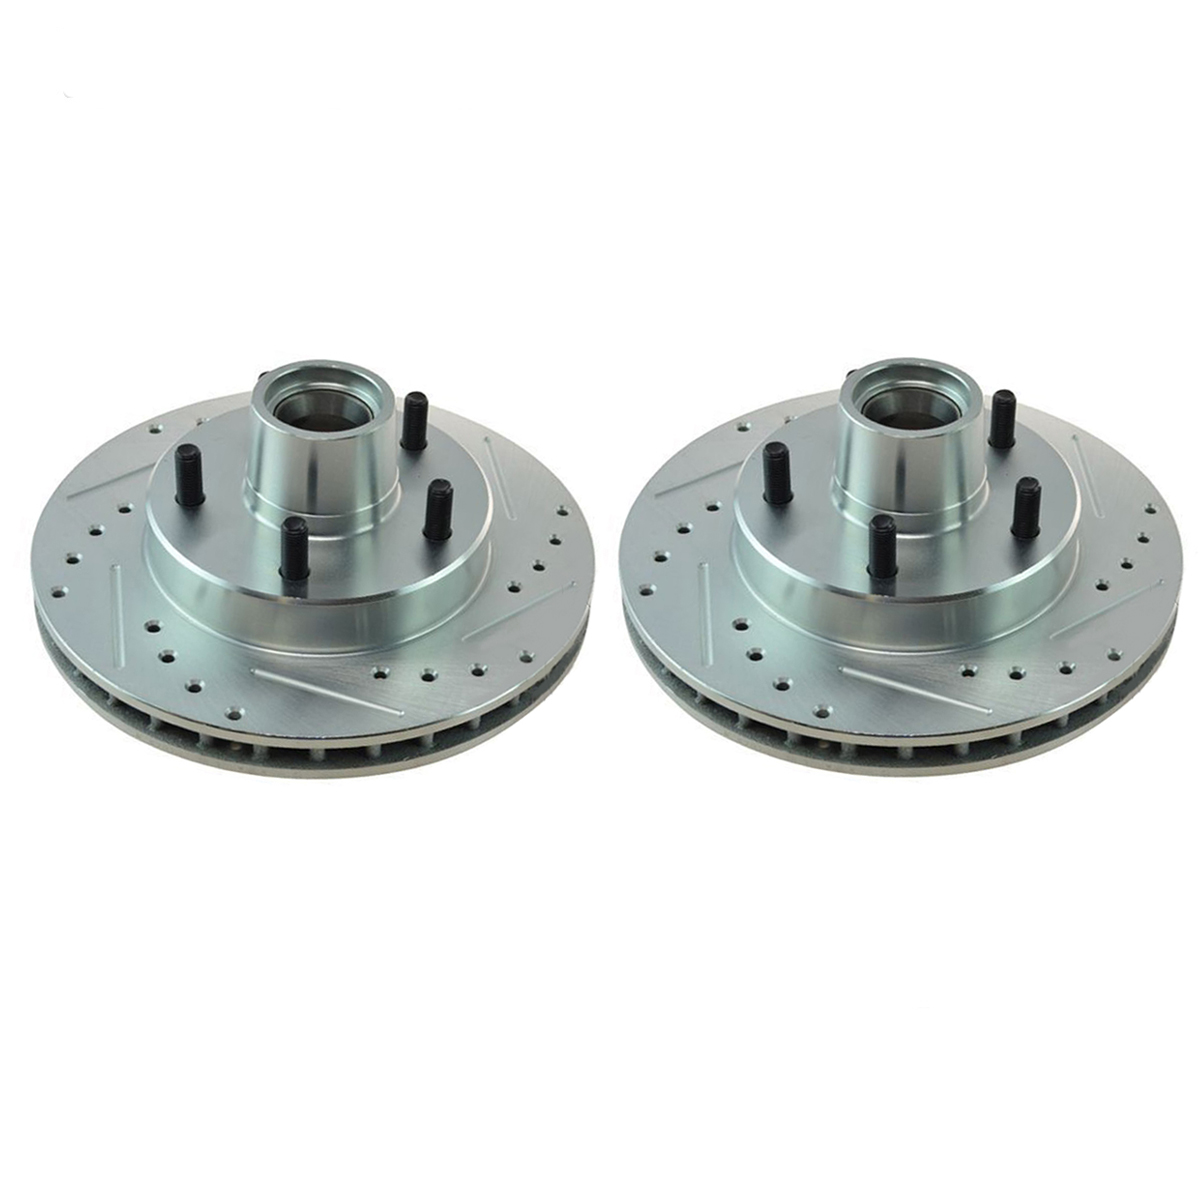 Pair (2) Front Drilled and Slotted Disc Brake Rotors for 1991-2003 Chevy  S10 Blazer 2WD - [1991-2003 GMC Jimmy S15 Sonoma 2WD] - 1996-2000 Isuzu